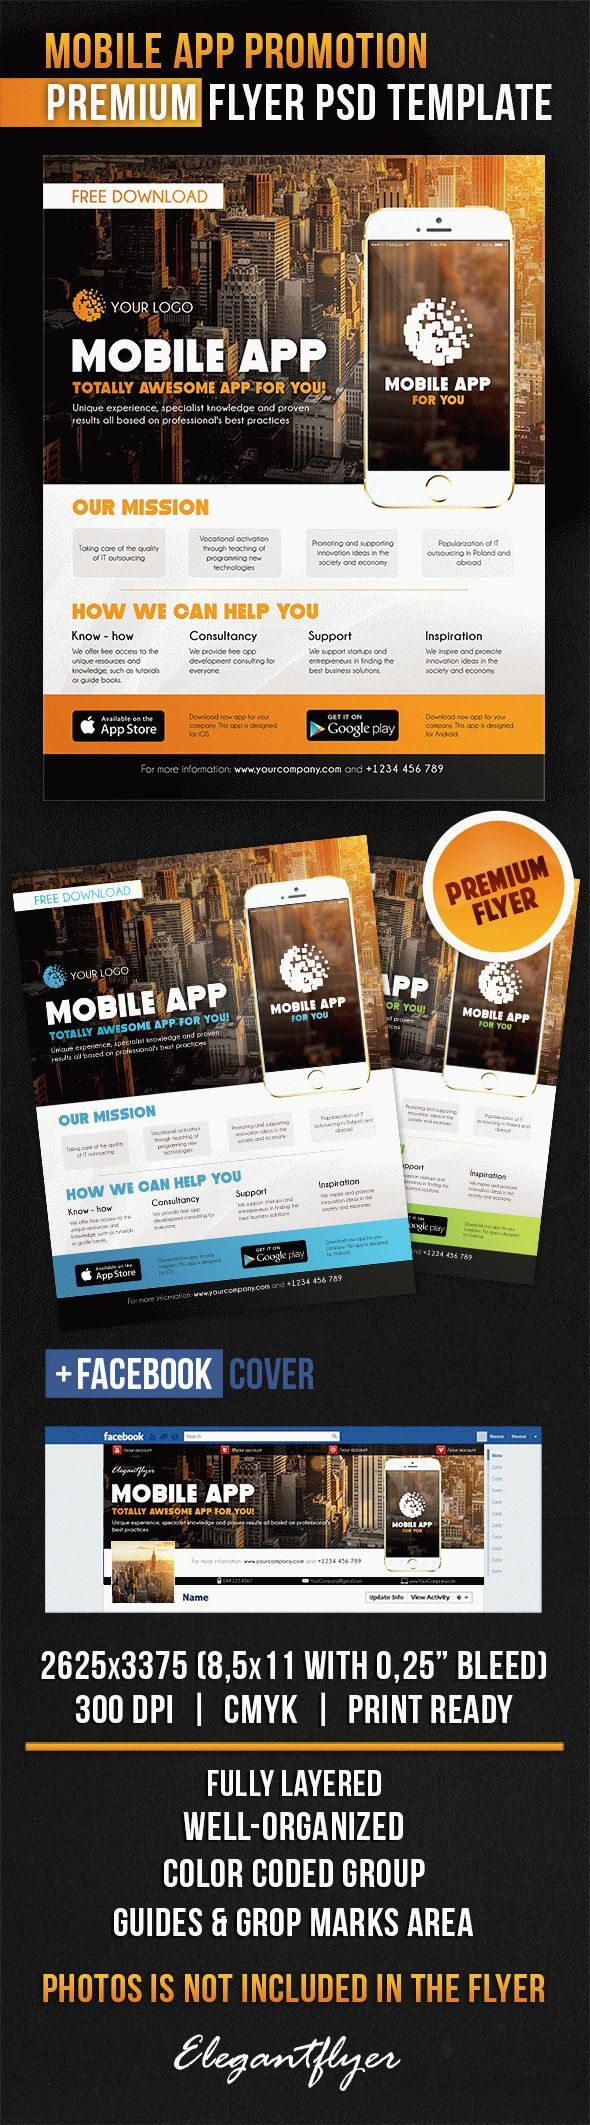 facebook app template psd - mobile app promotion flyer psd template by elegantflyer